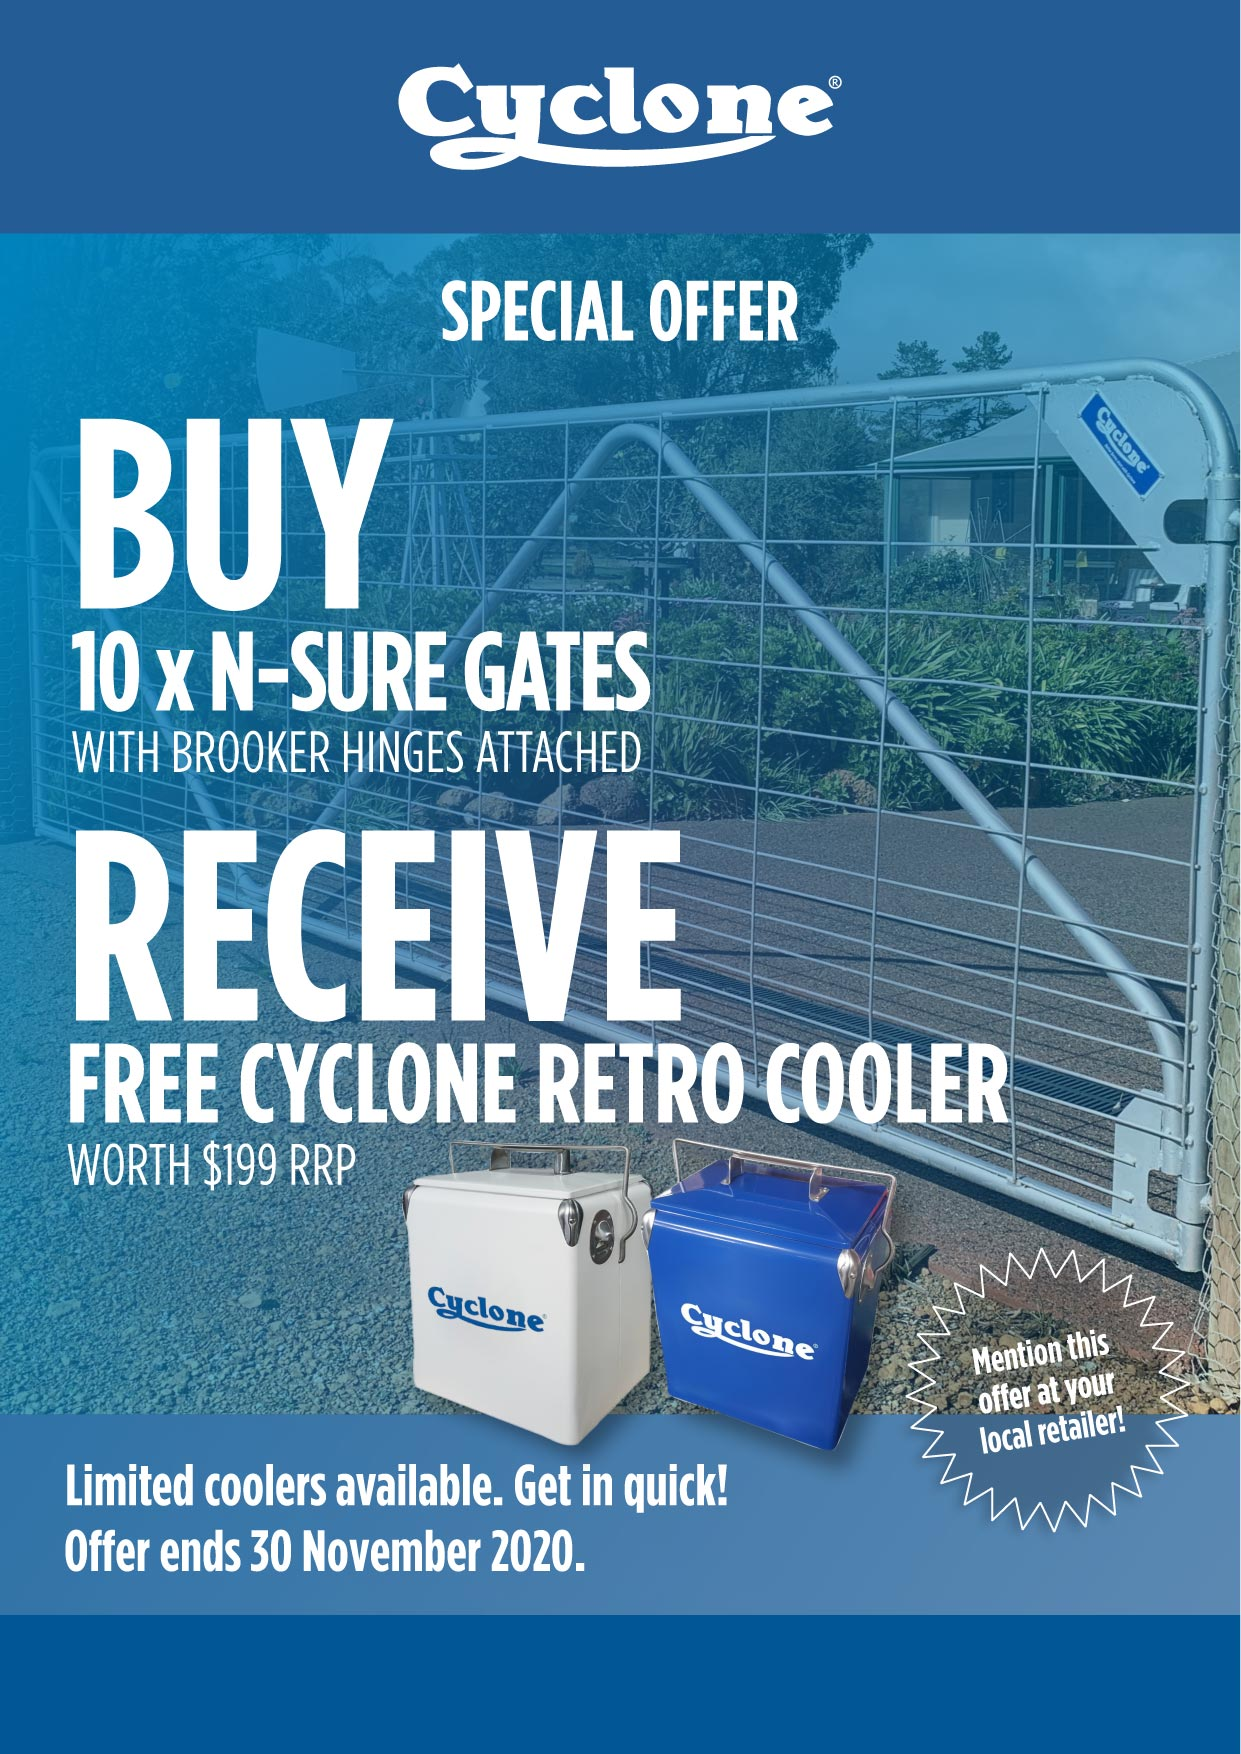 Cyclone Promotion